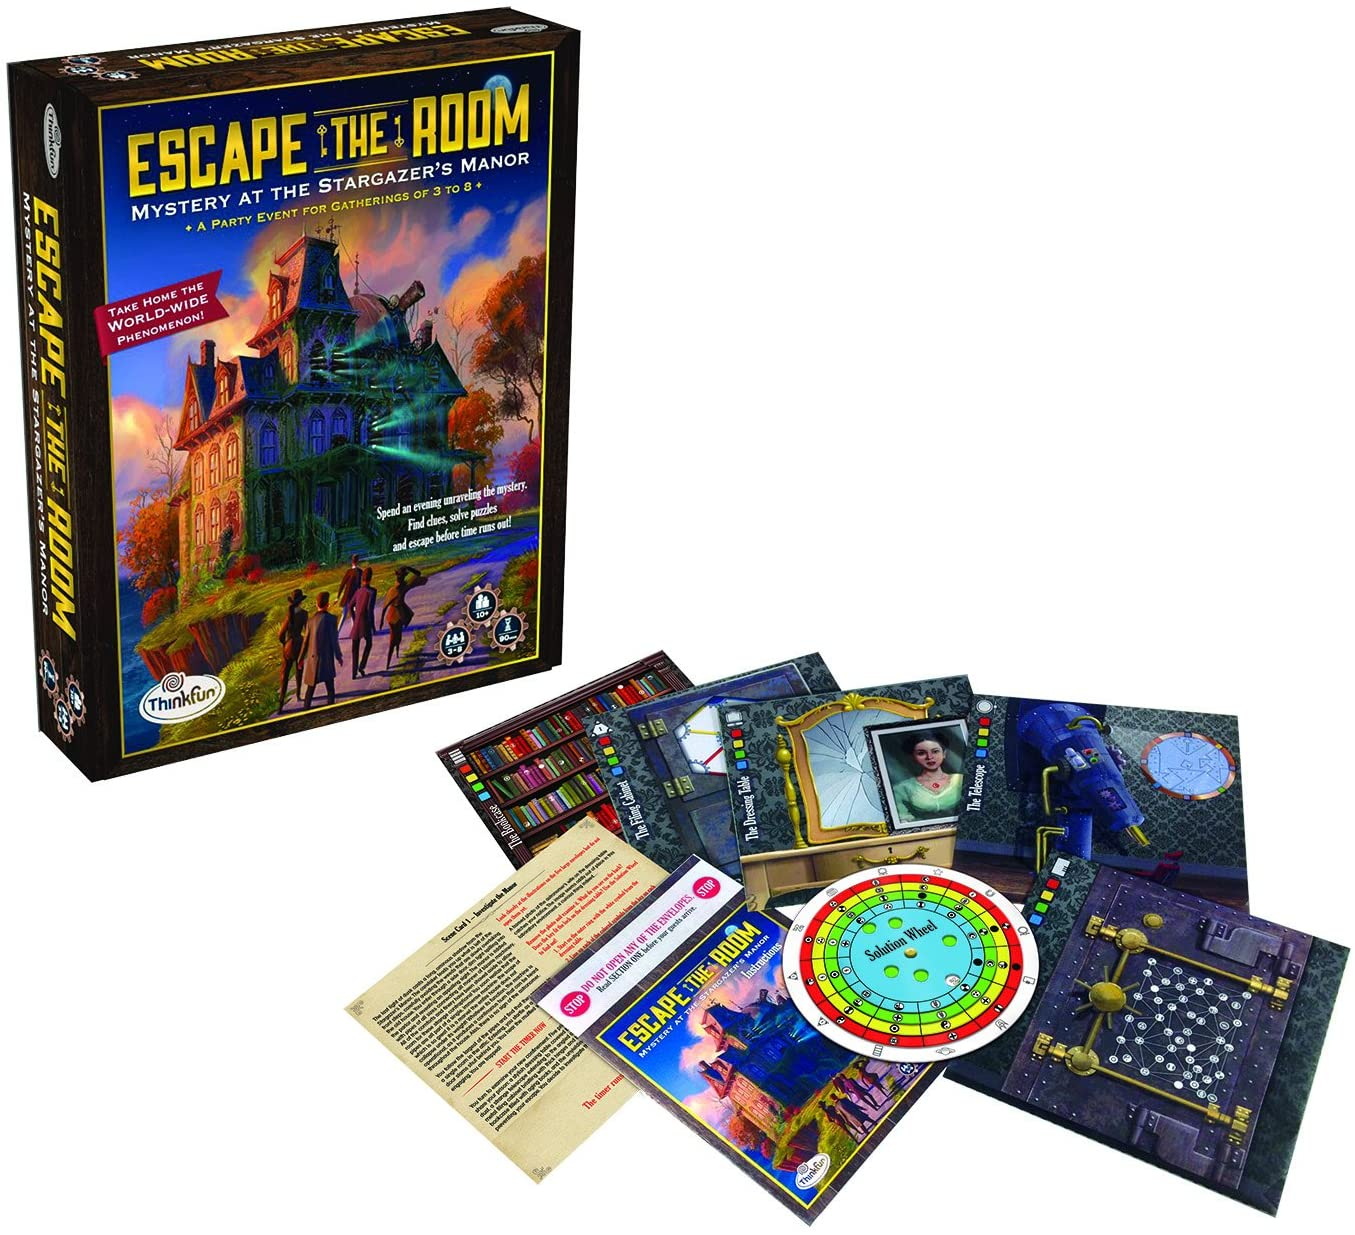 Amazon Com Thinkfun Escape The Room Stargazer S Manor An Escape Room Experience In A Box For Age 10 And Up Toys Games